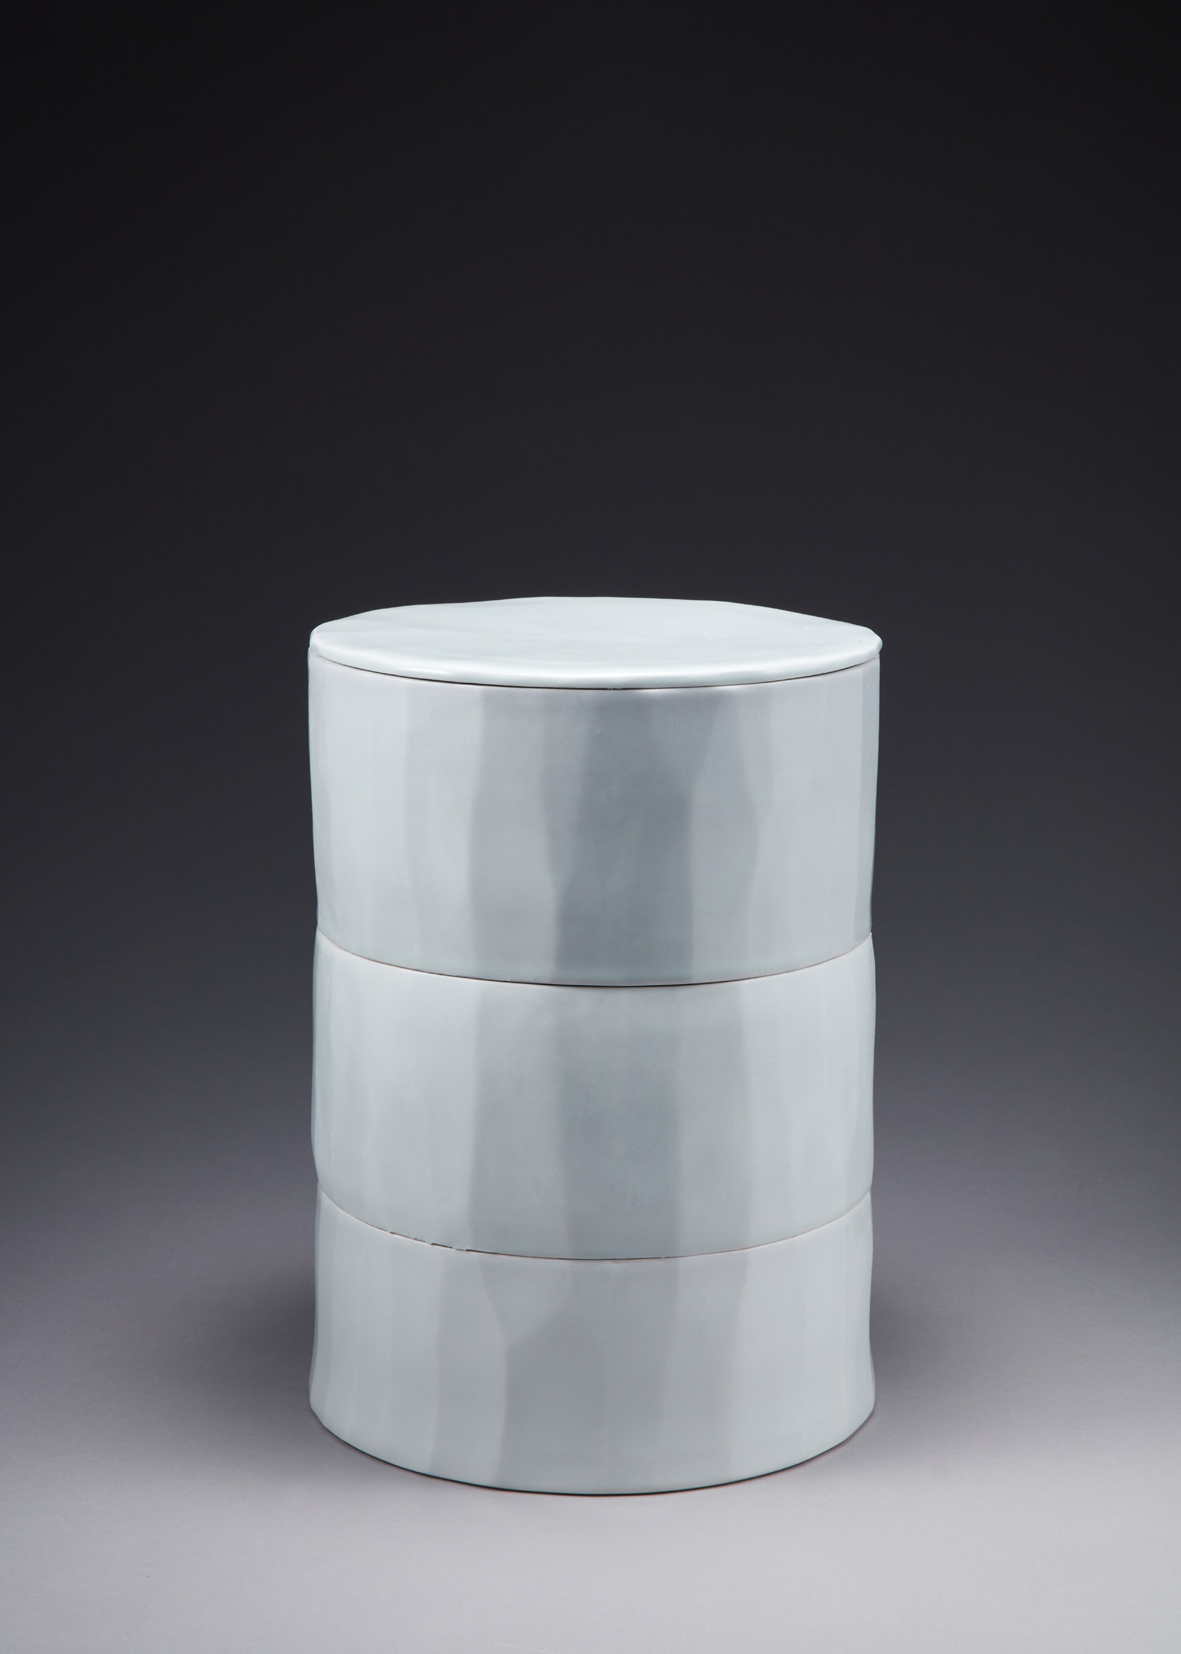 백자 삼단합 Three stories white porcelain container with lid